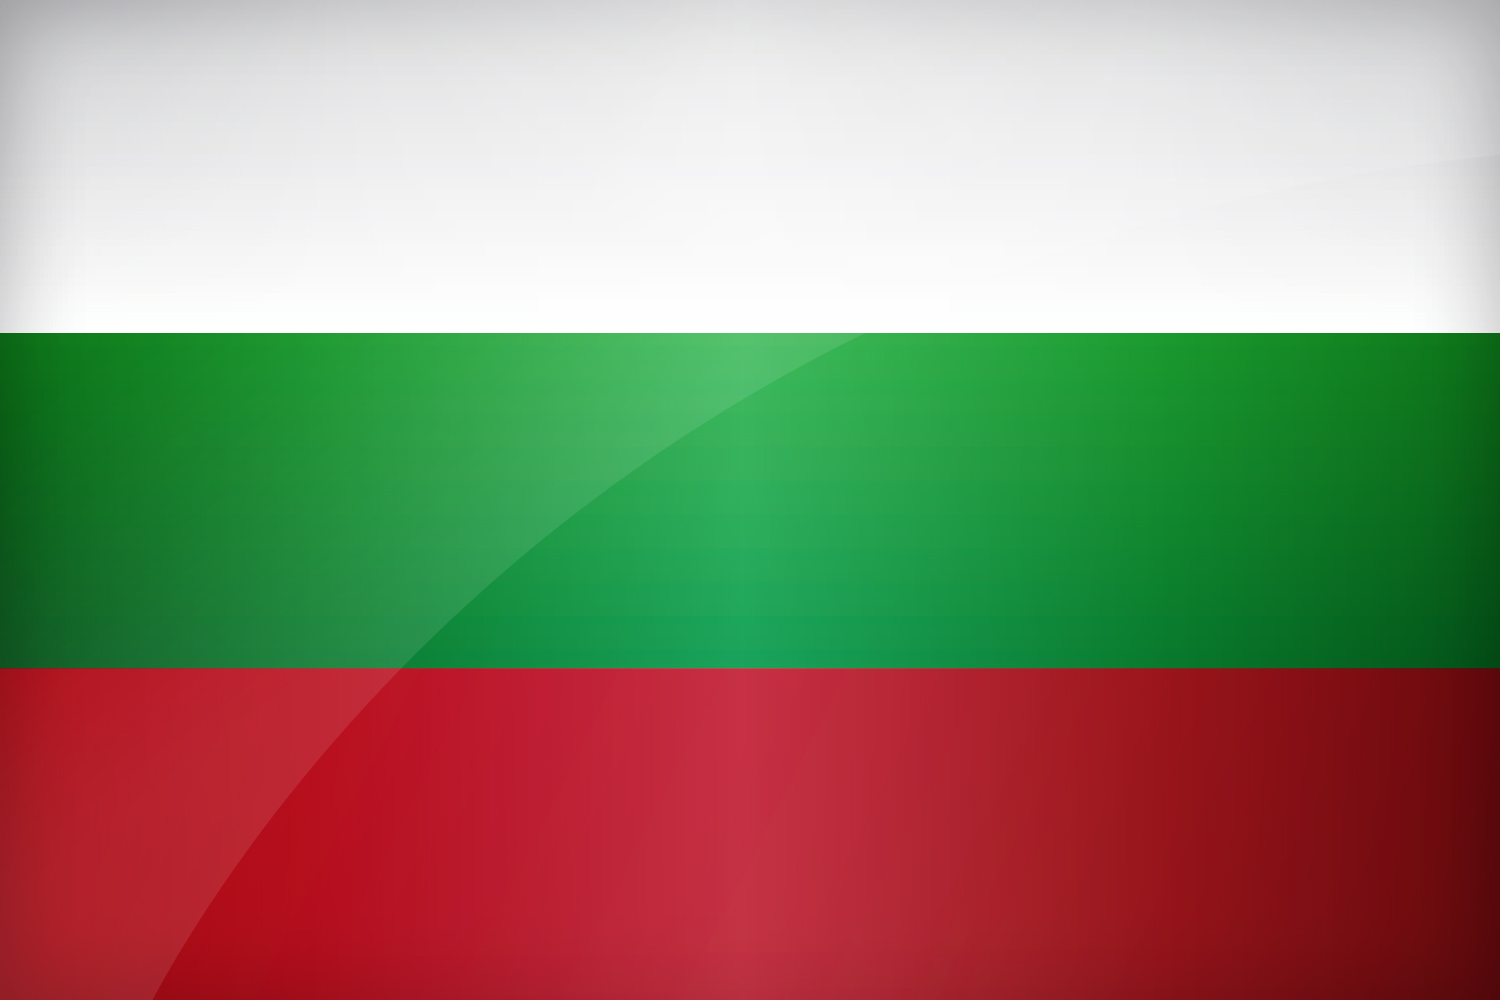 Bulgarian Flags (Bulgaria) from The World Flag Database